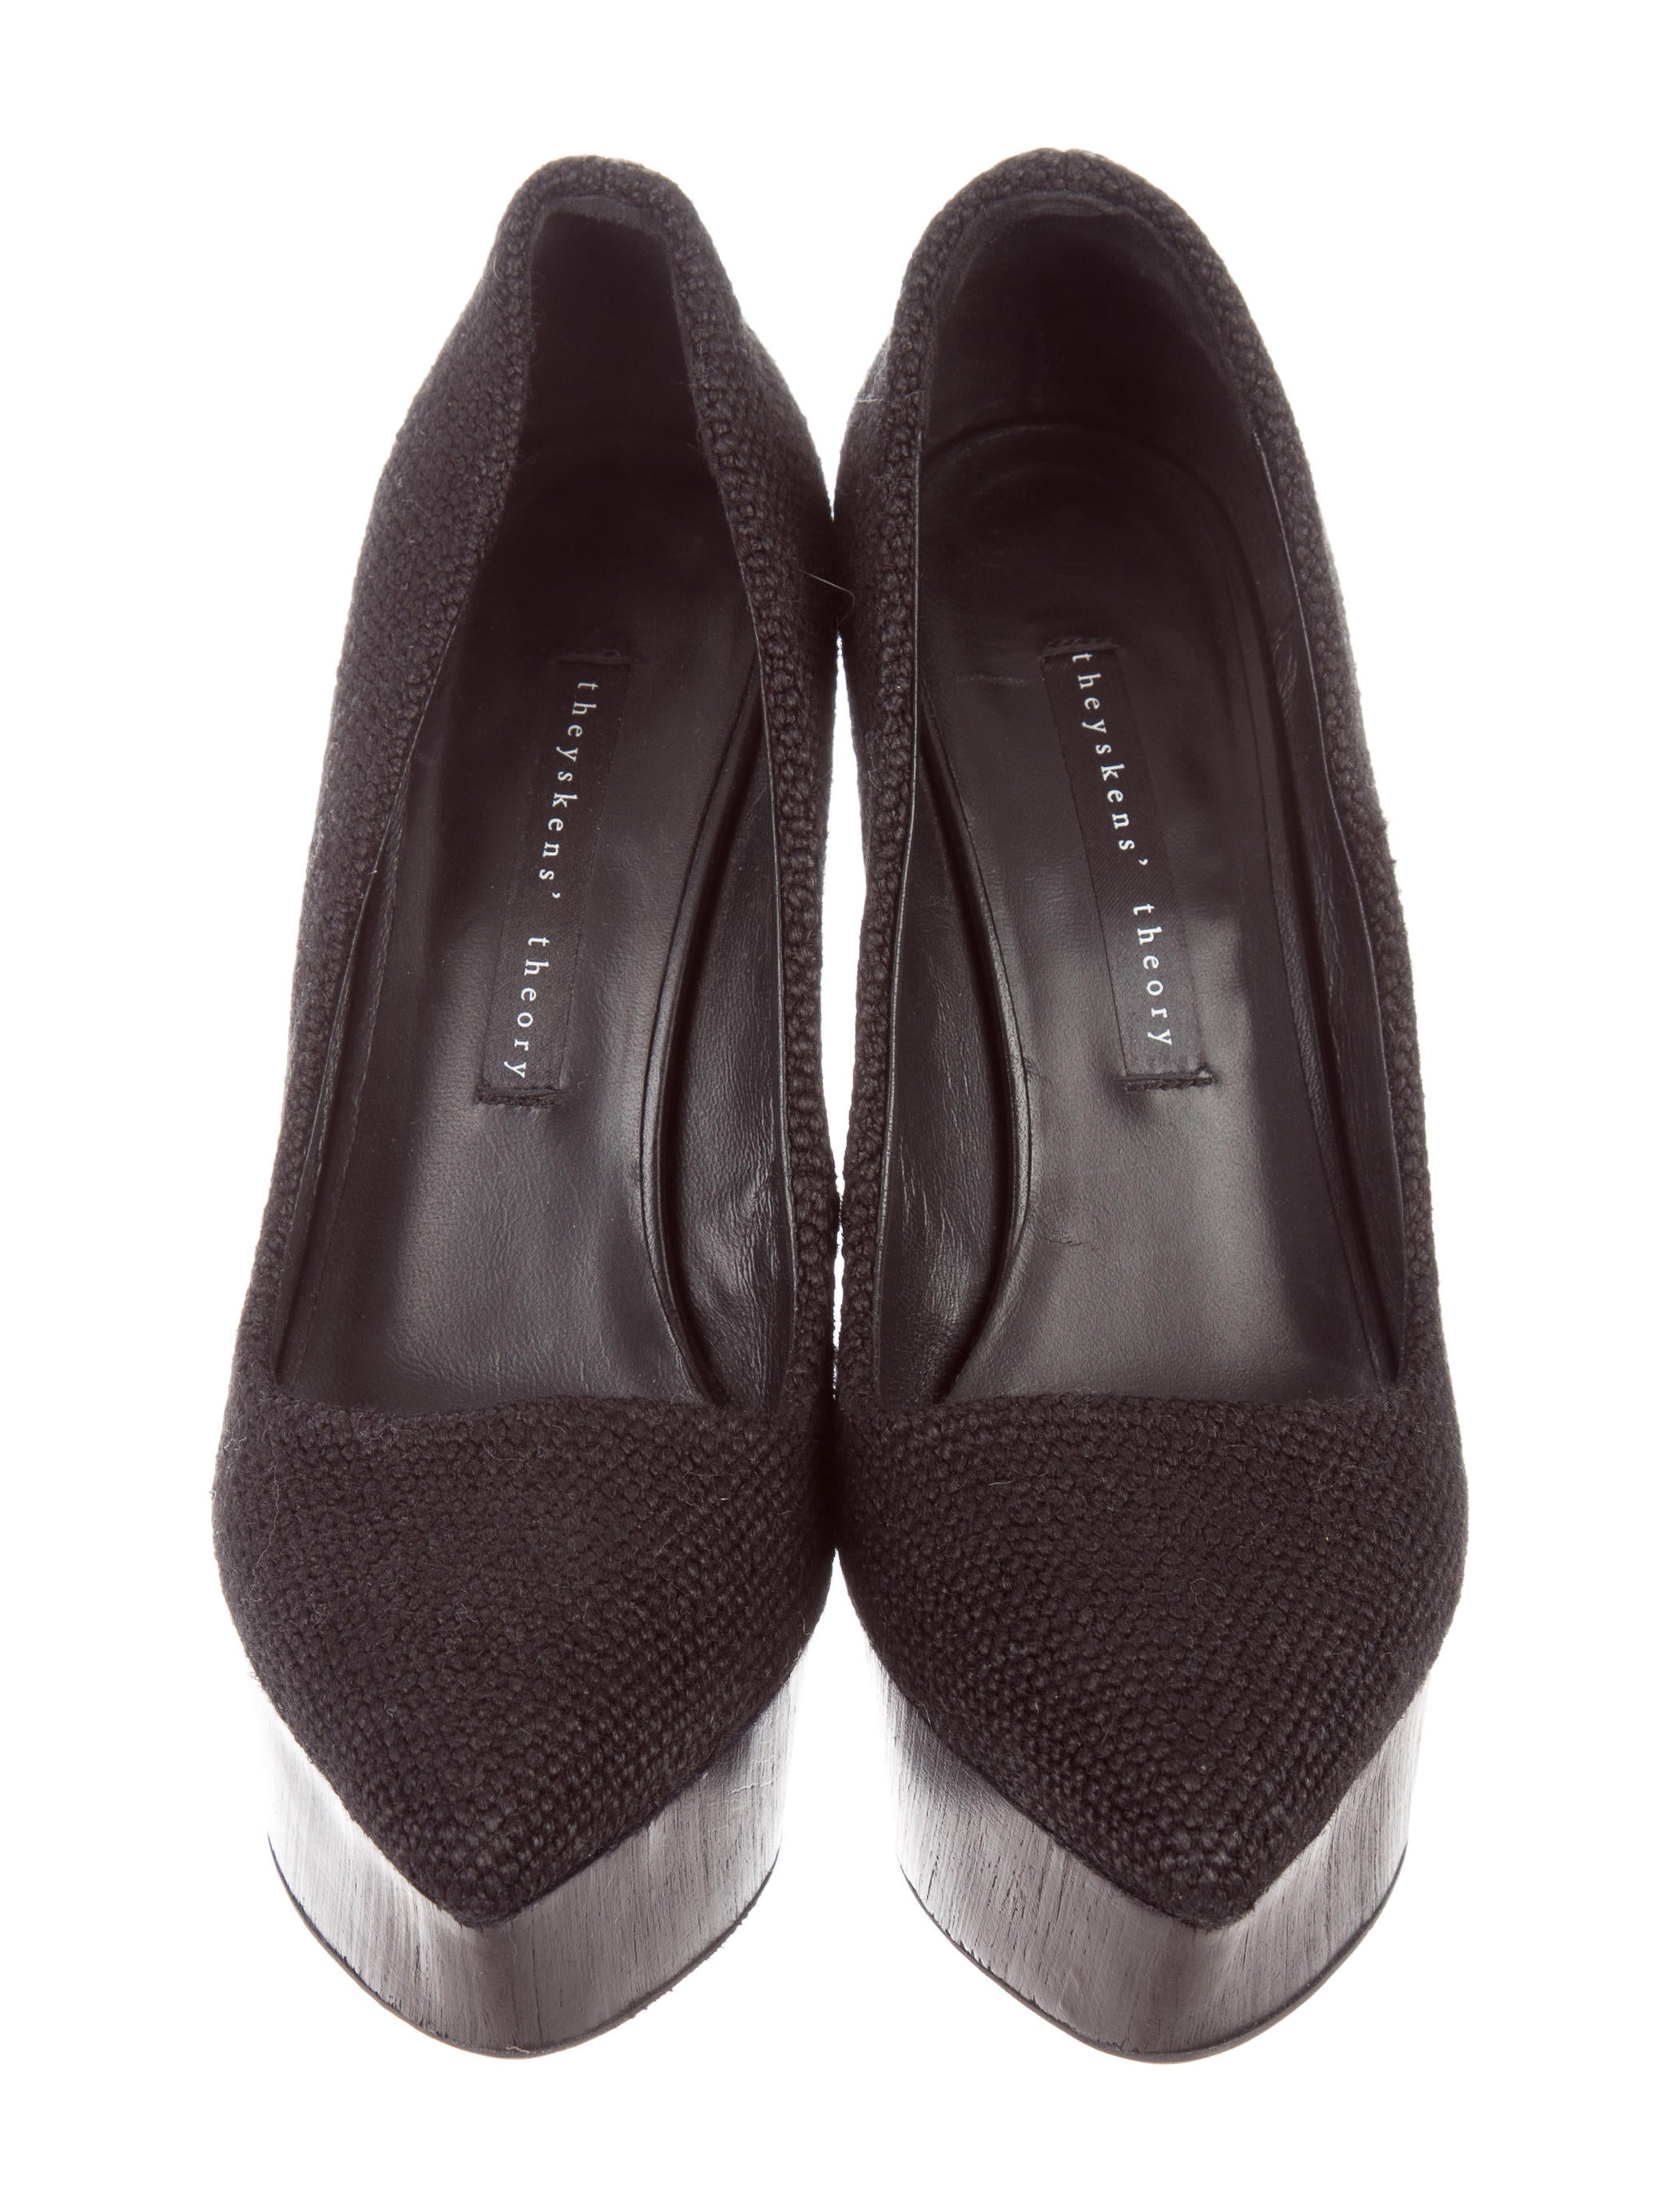 theyskens theory pointed toe platform wedges shoes